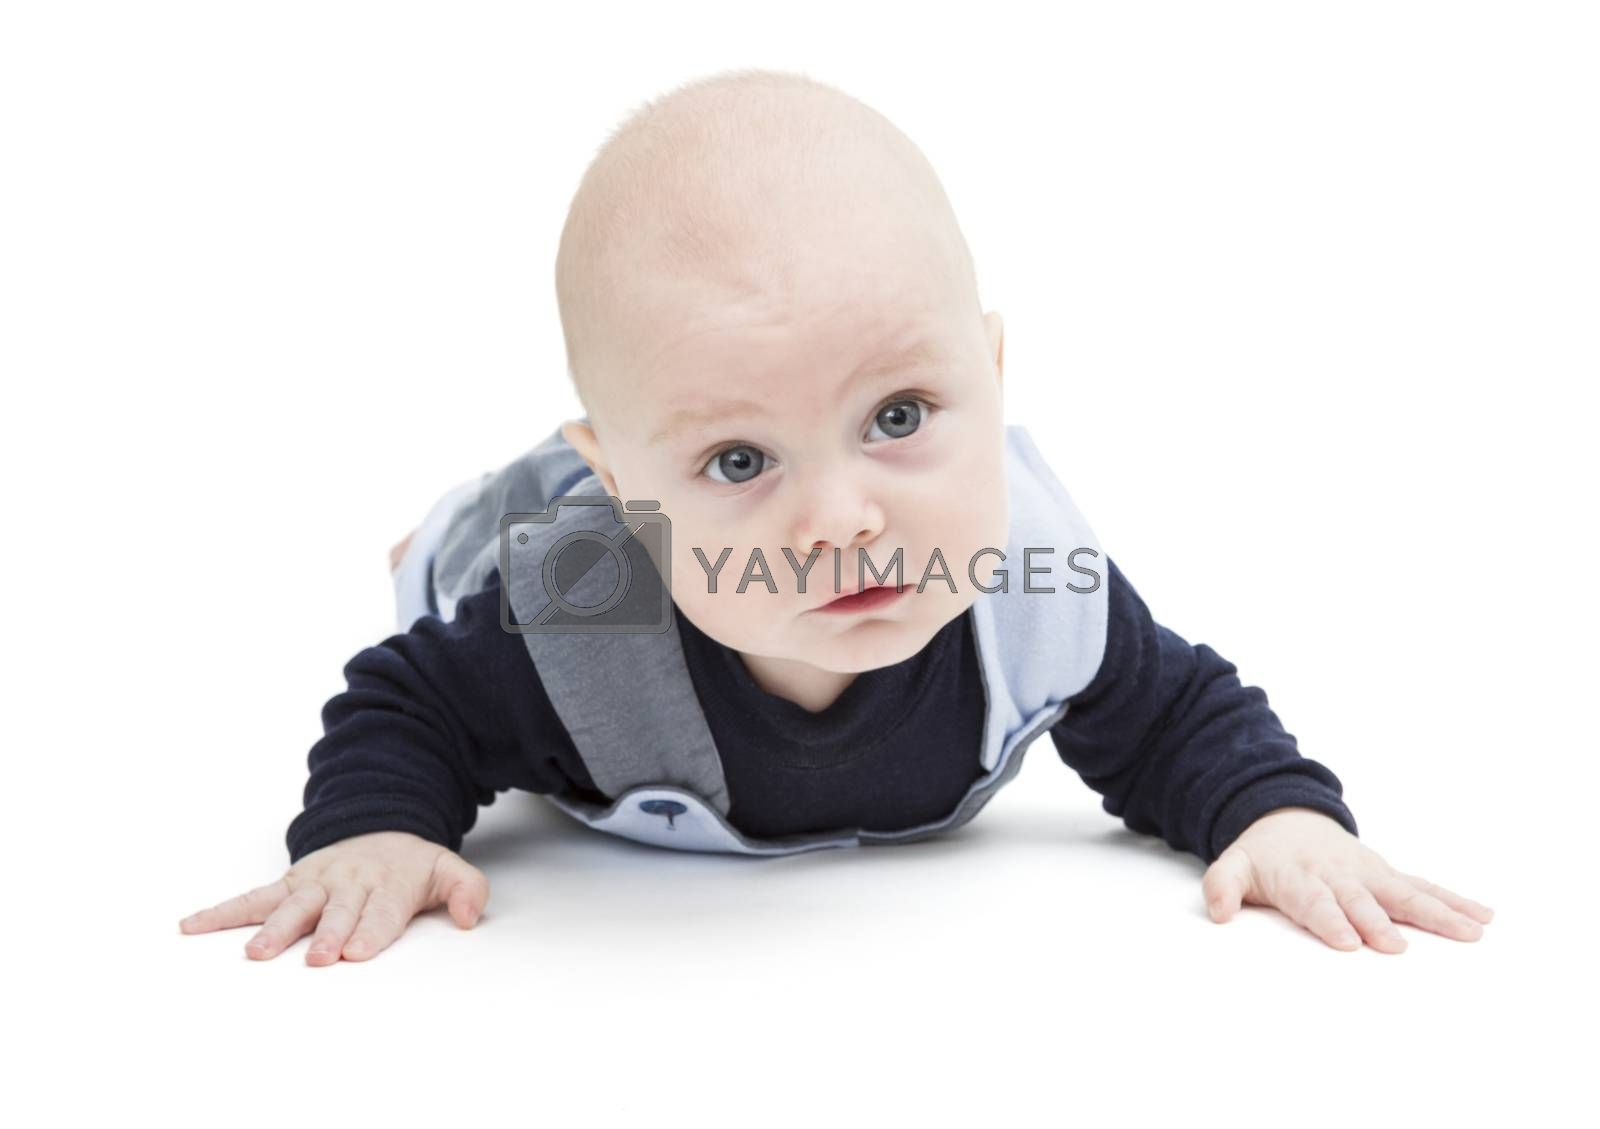 6 month old baby crawling on white floor. isolated on white background